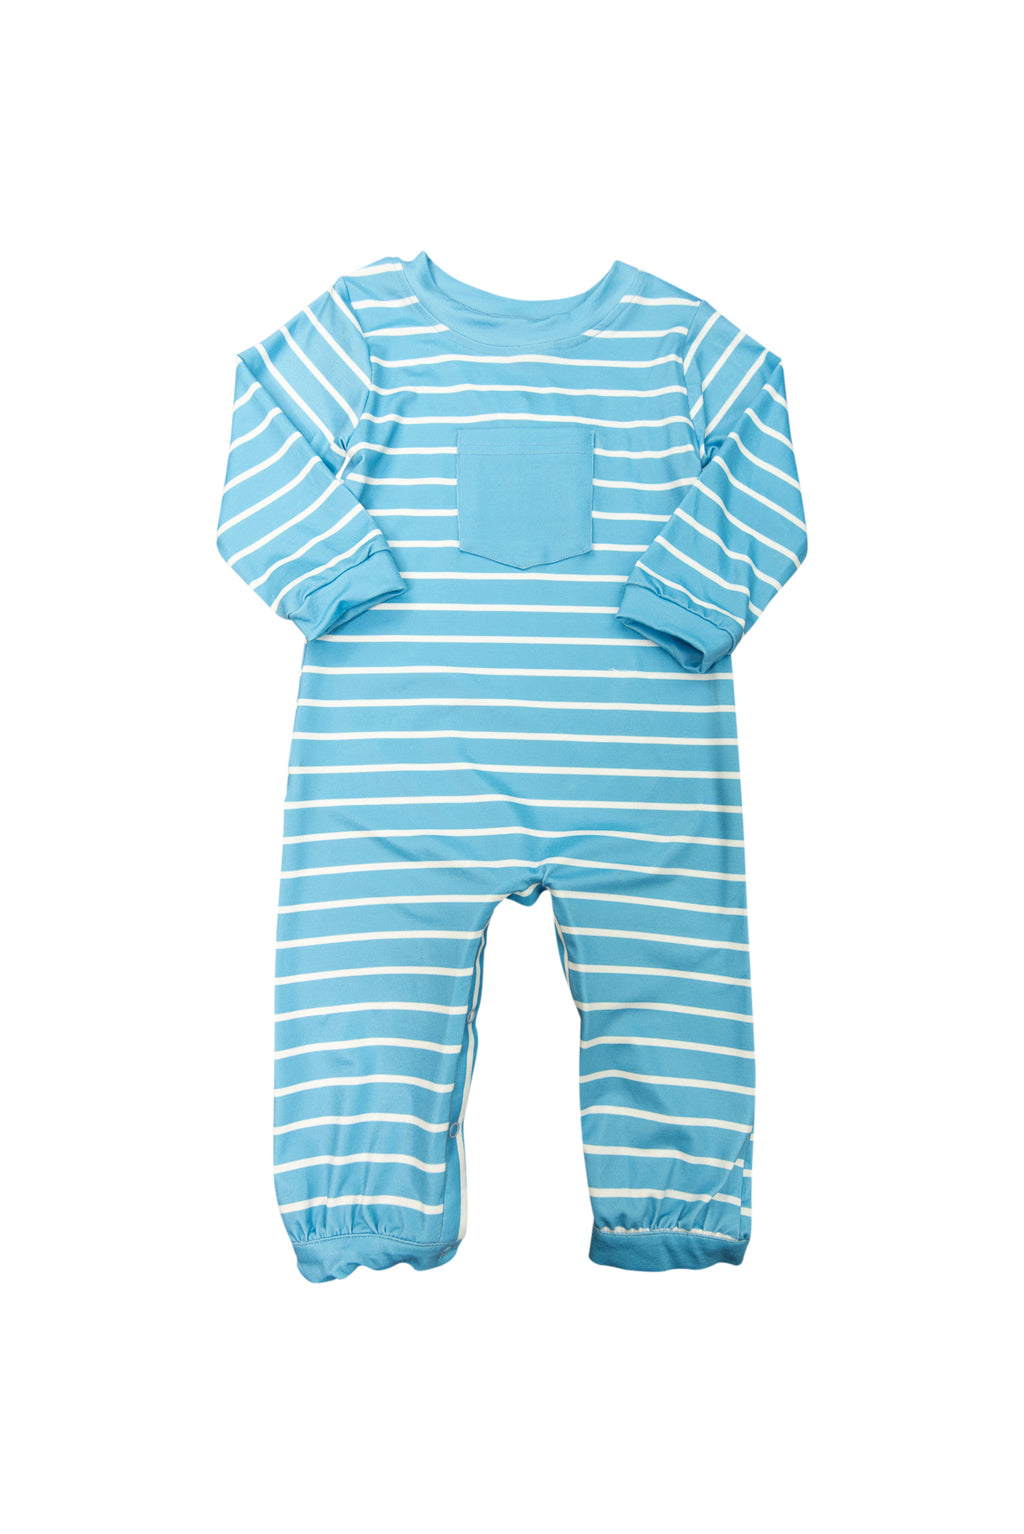 Boys Blue Stripes Romper